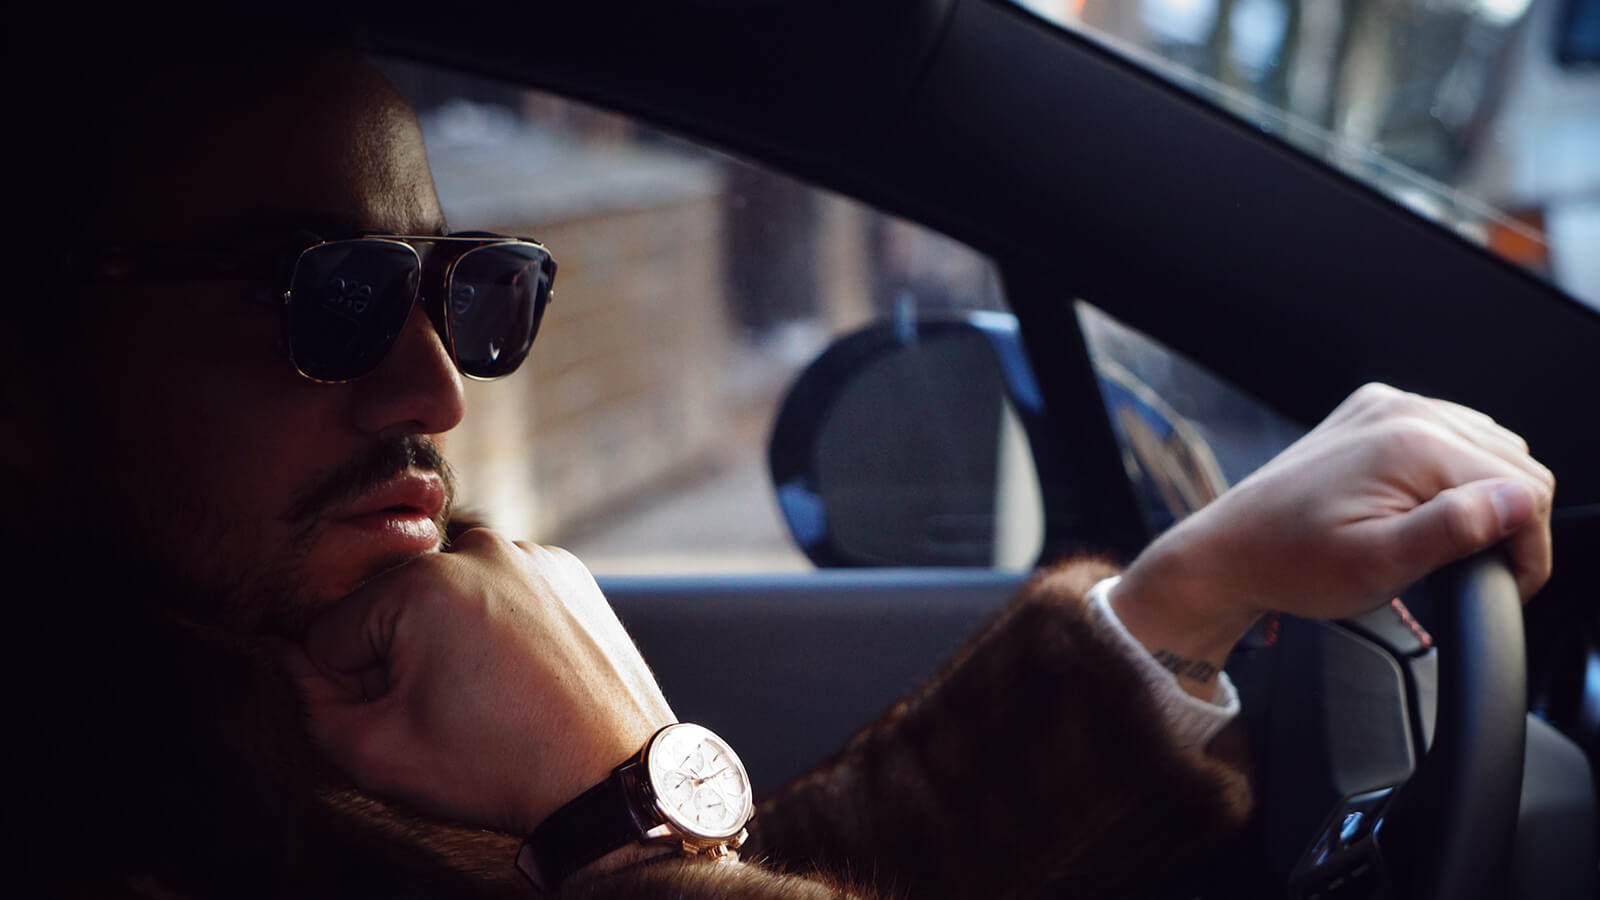 How can sunglasses help with driving